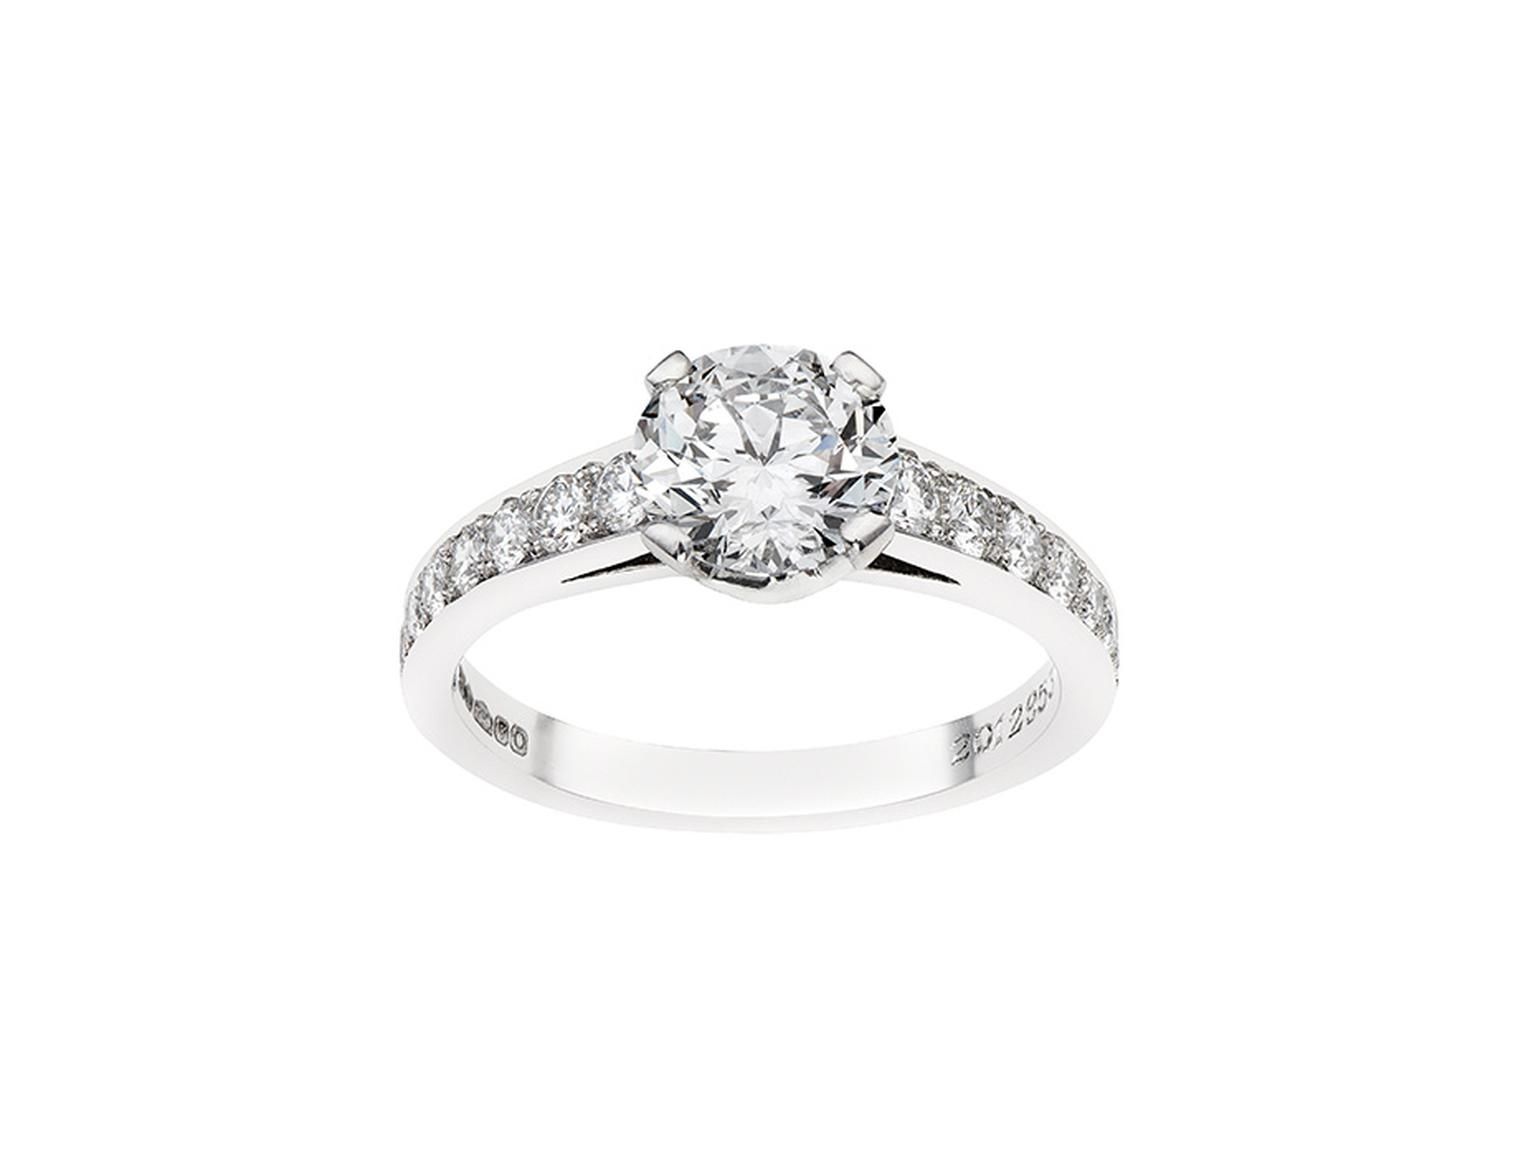 Garrard Eternal Cut diamond engagement ring